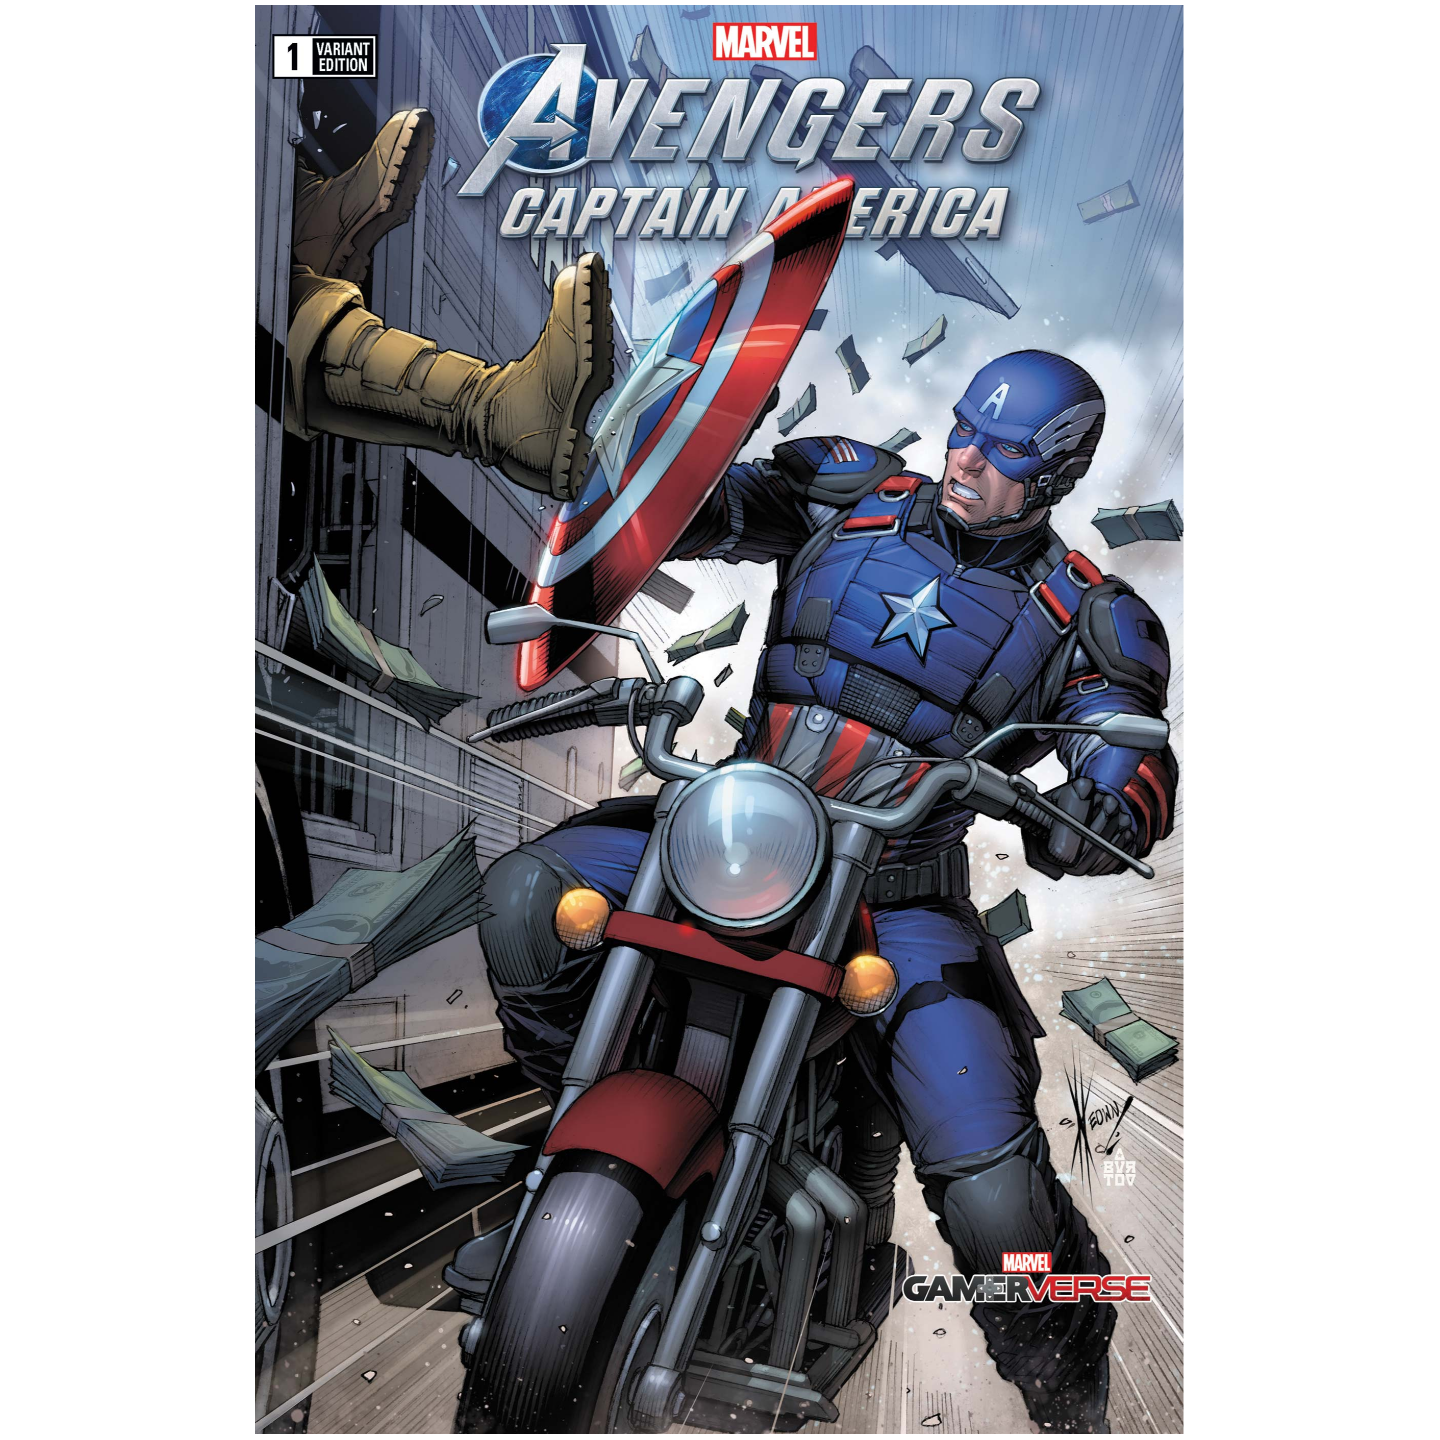 MARVELS AVENGERS CAPTAIN AMERICA 1 KEOWN VAR